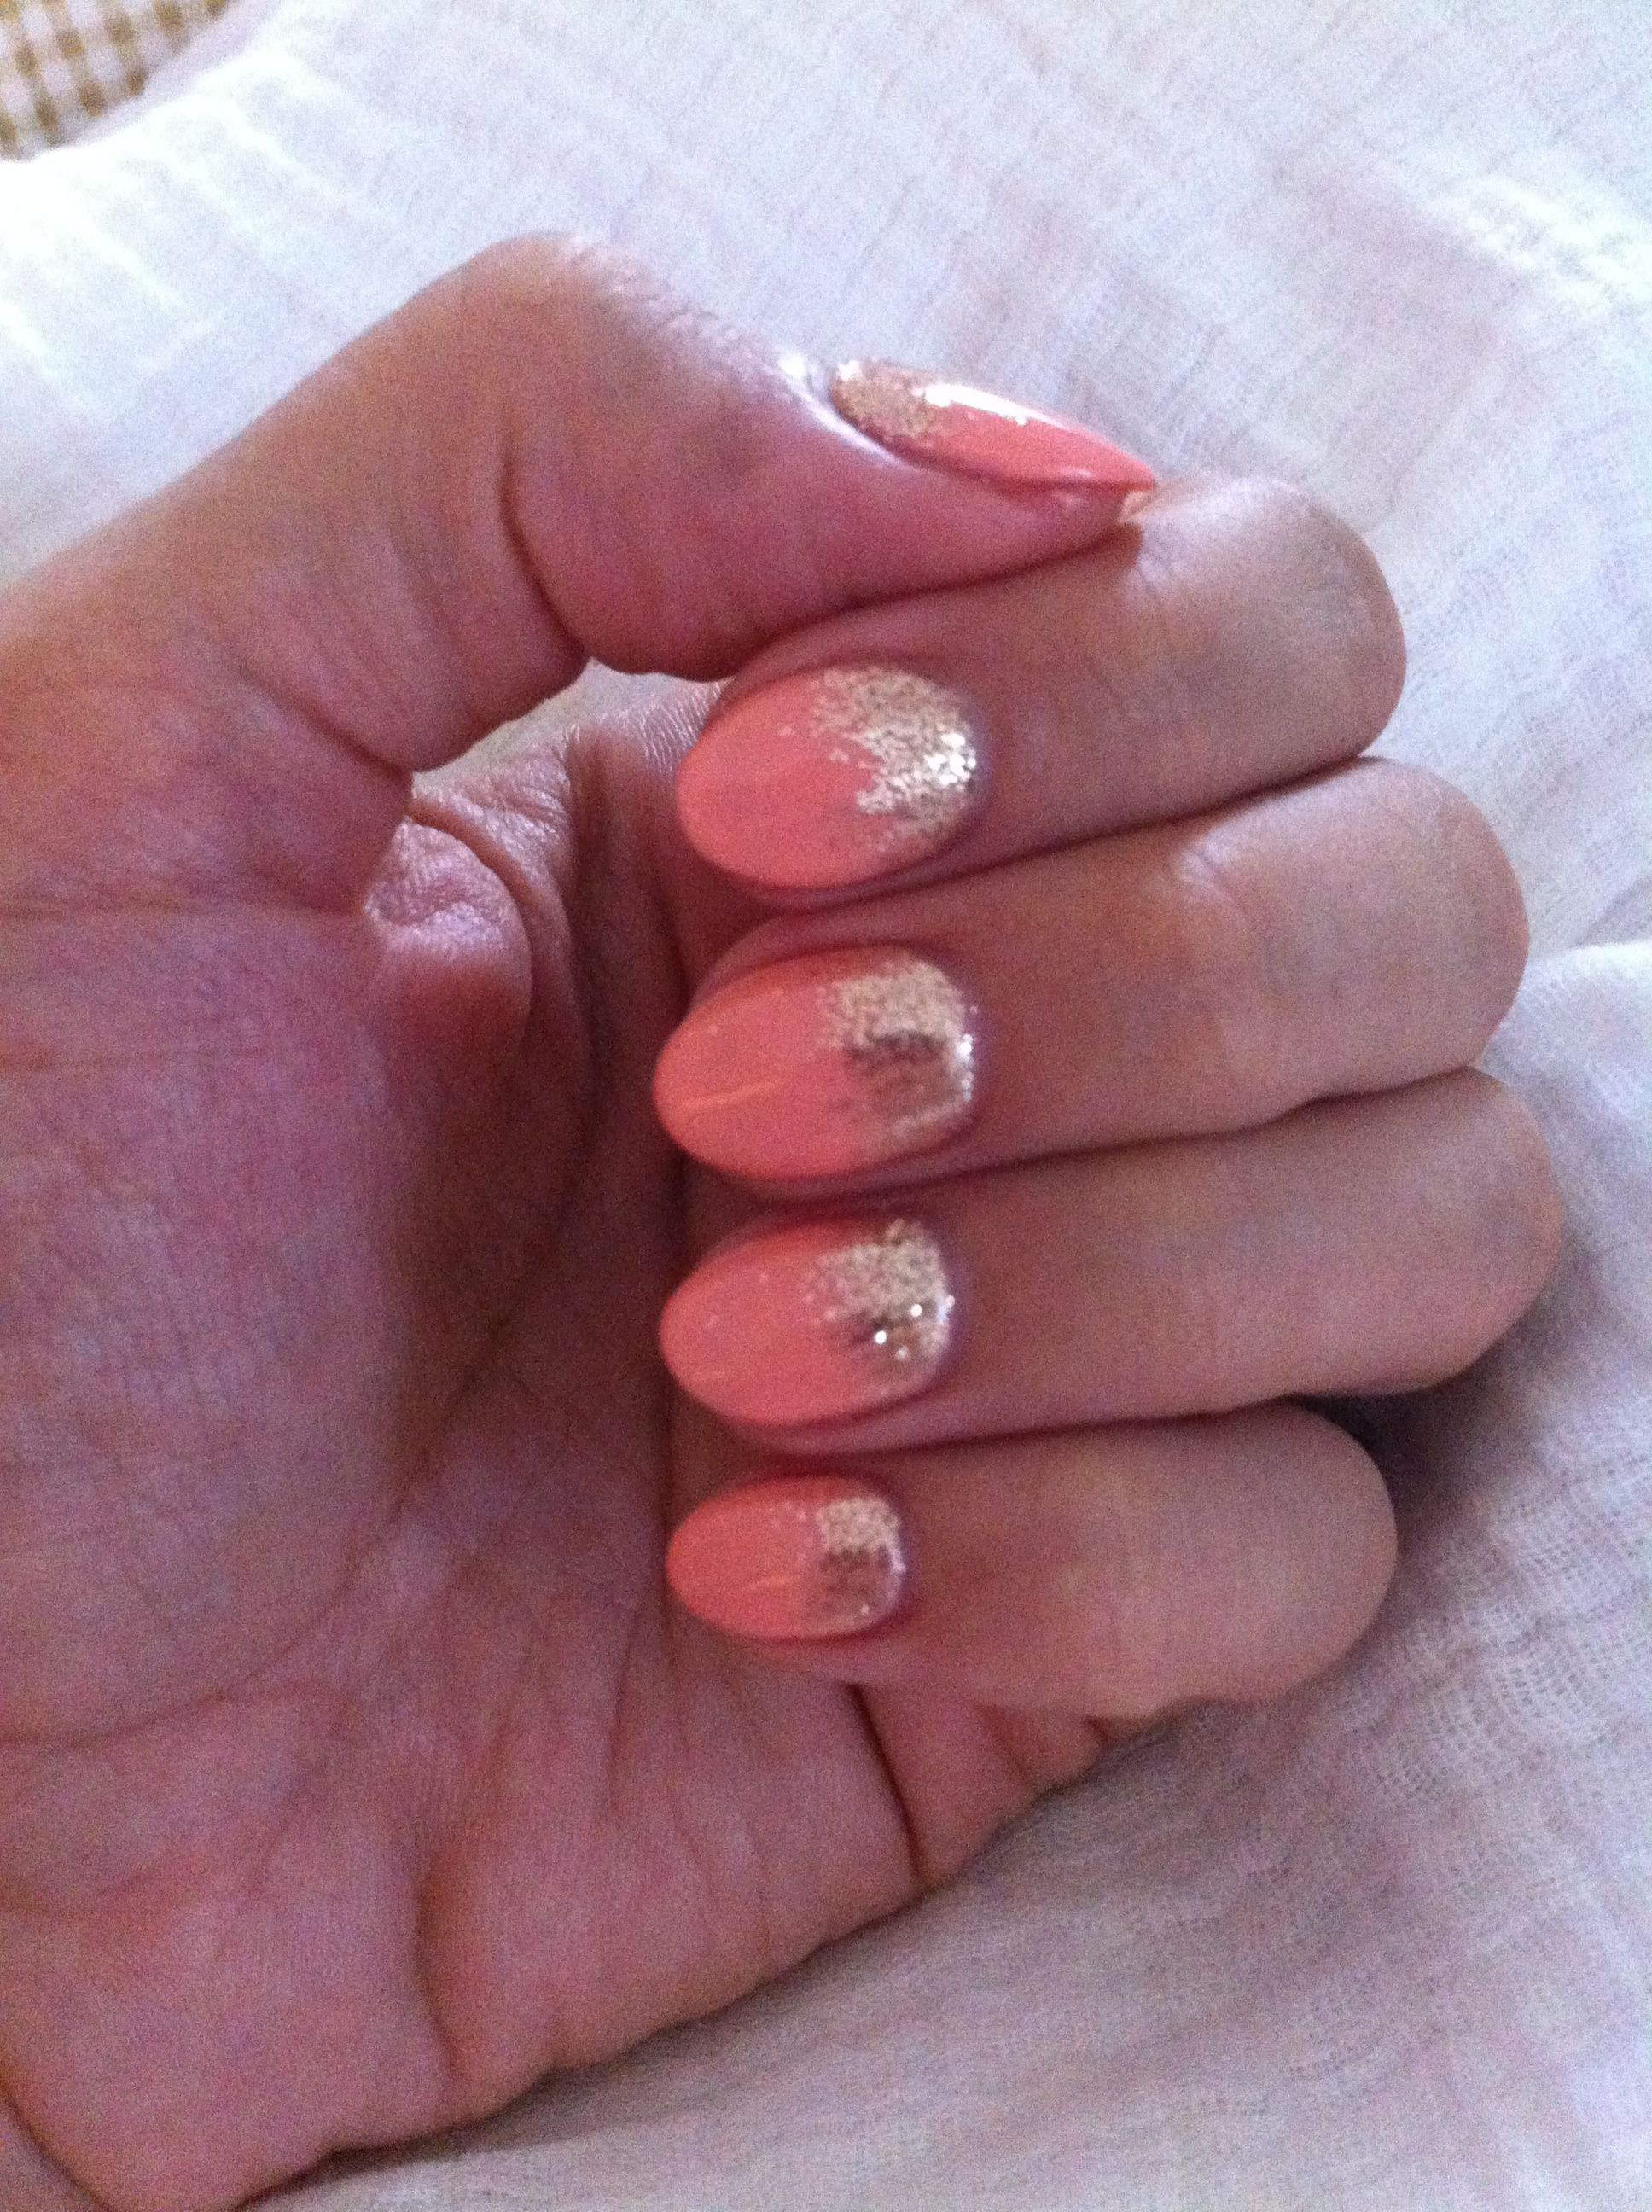 Love my new creamy peach almond shaped nails | Fashion nails | Pinterest